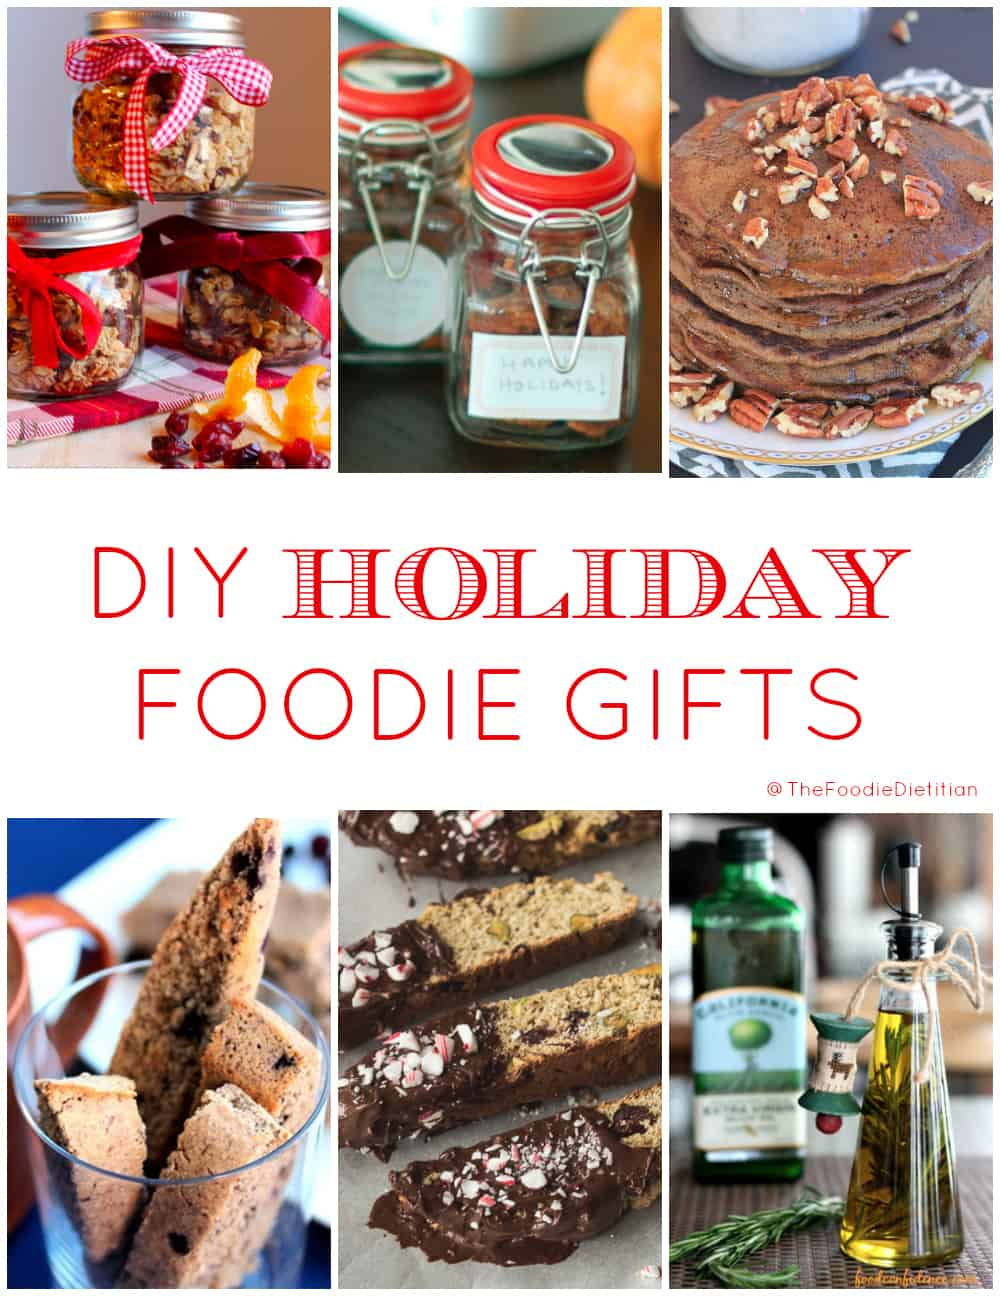 DIY Holiday Foodie Gifts